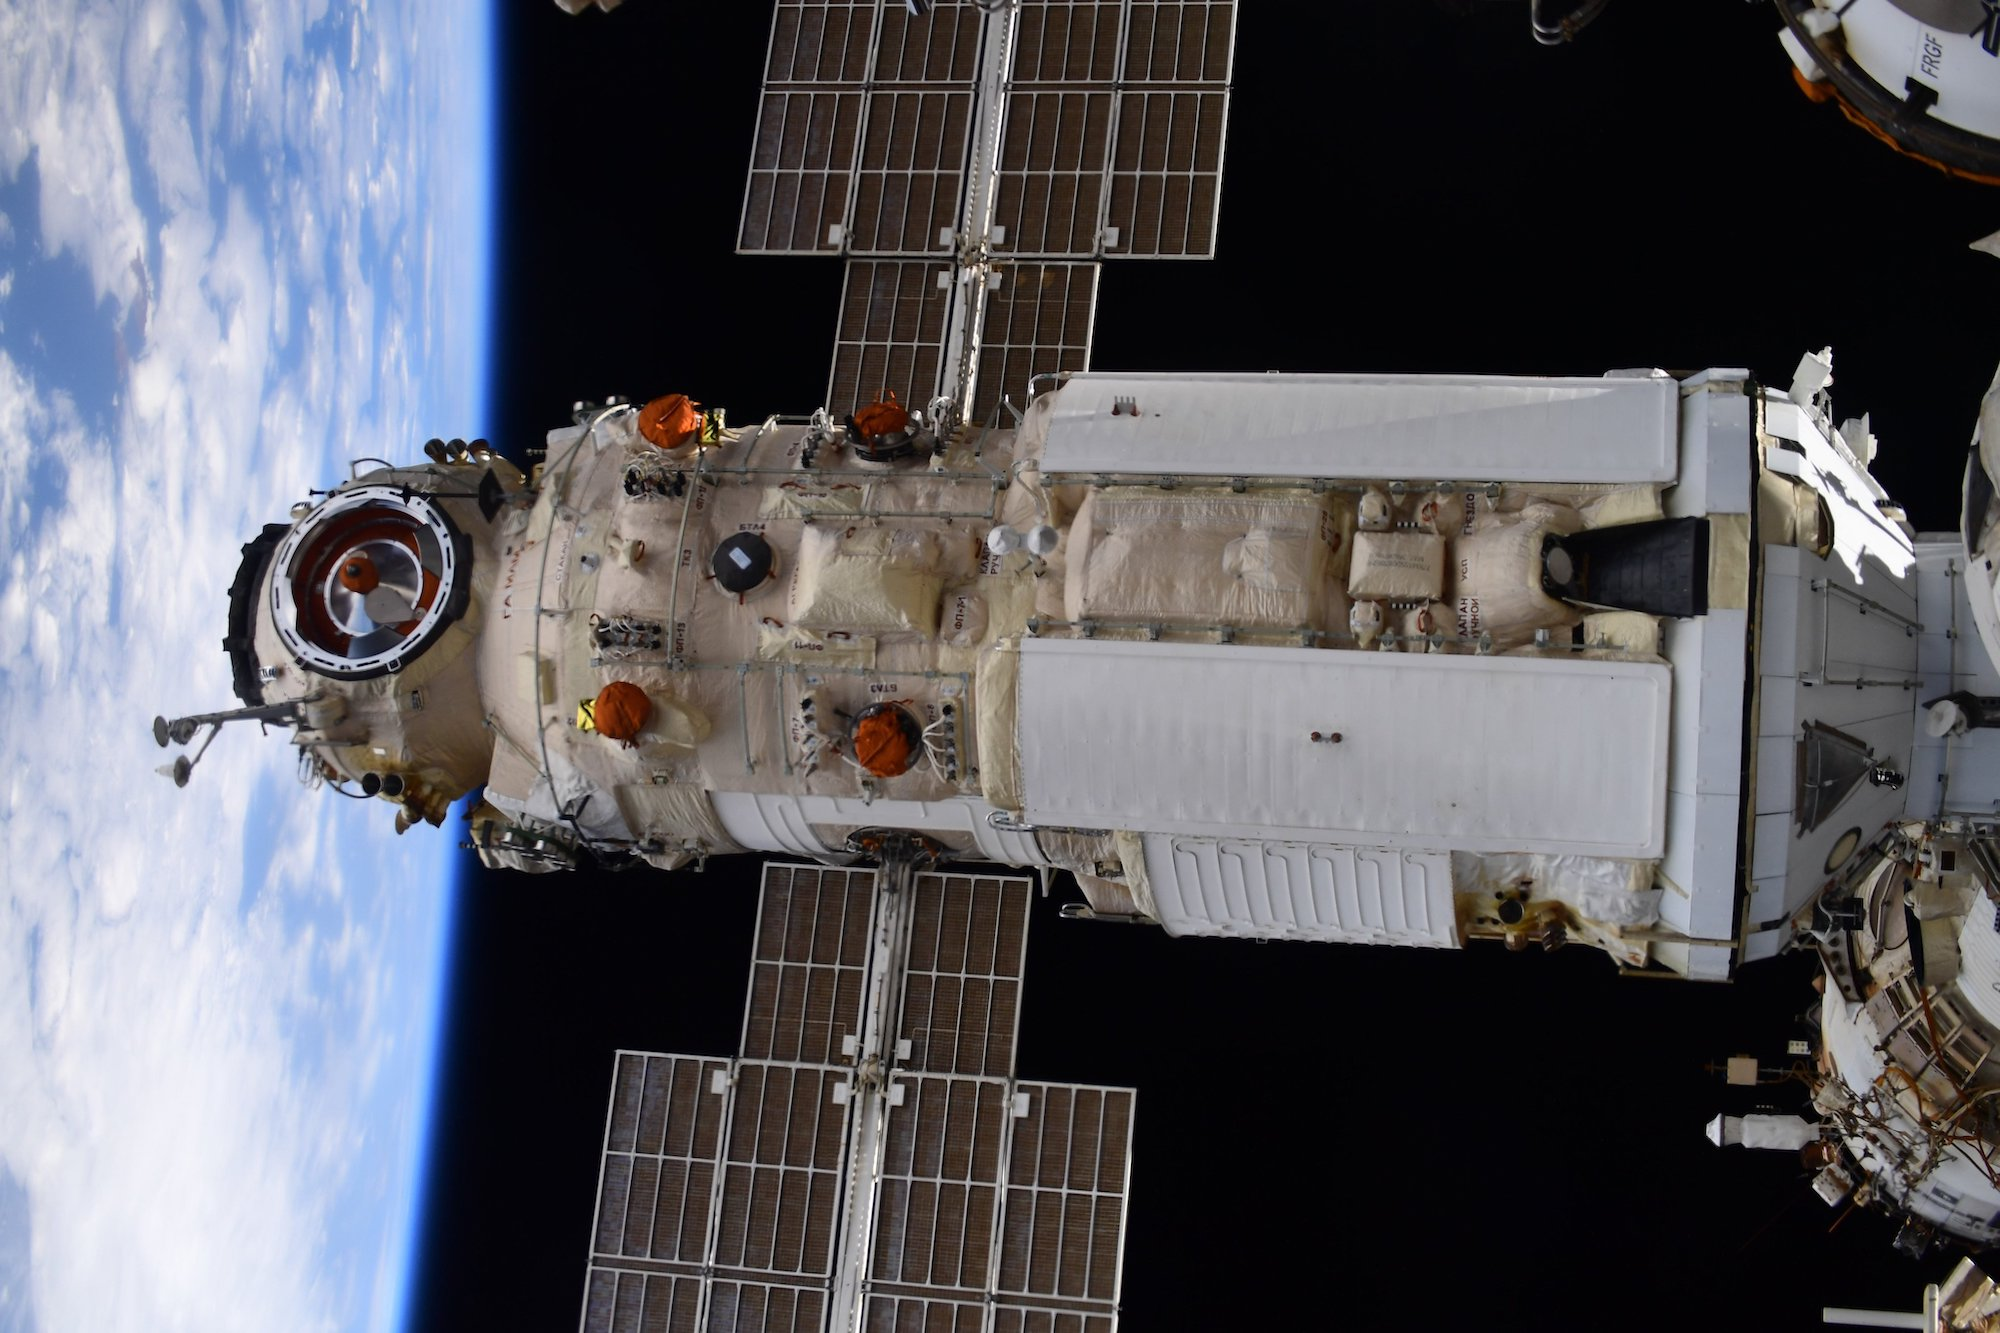 Nauka docked with the ISS.  A photo by the American Shane Kimbrough. Credit: NASA/Shane Kimbrough